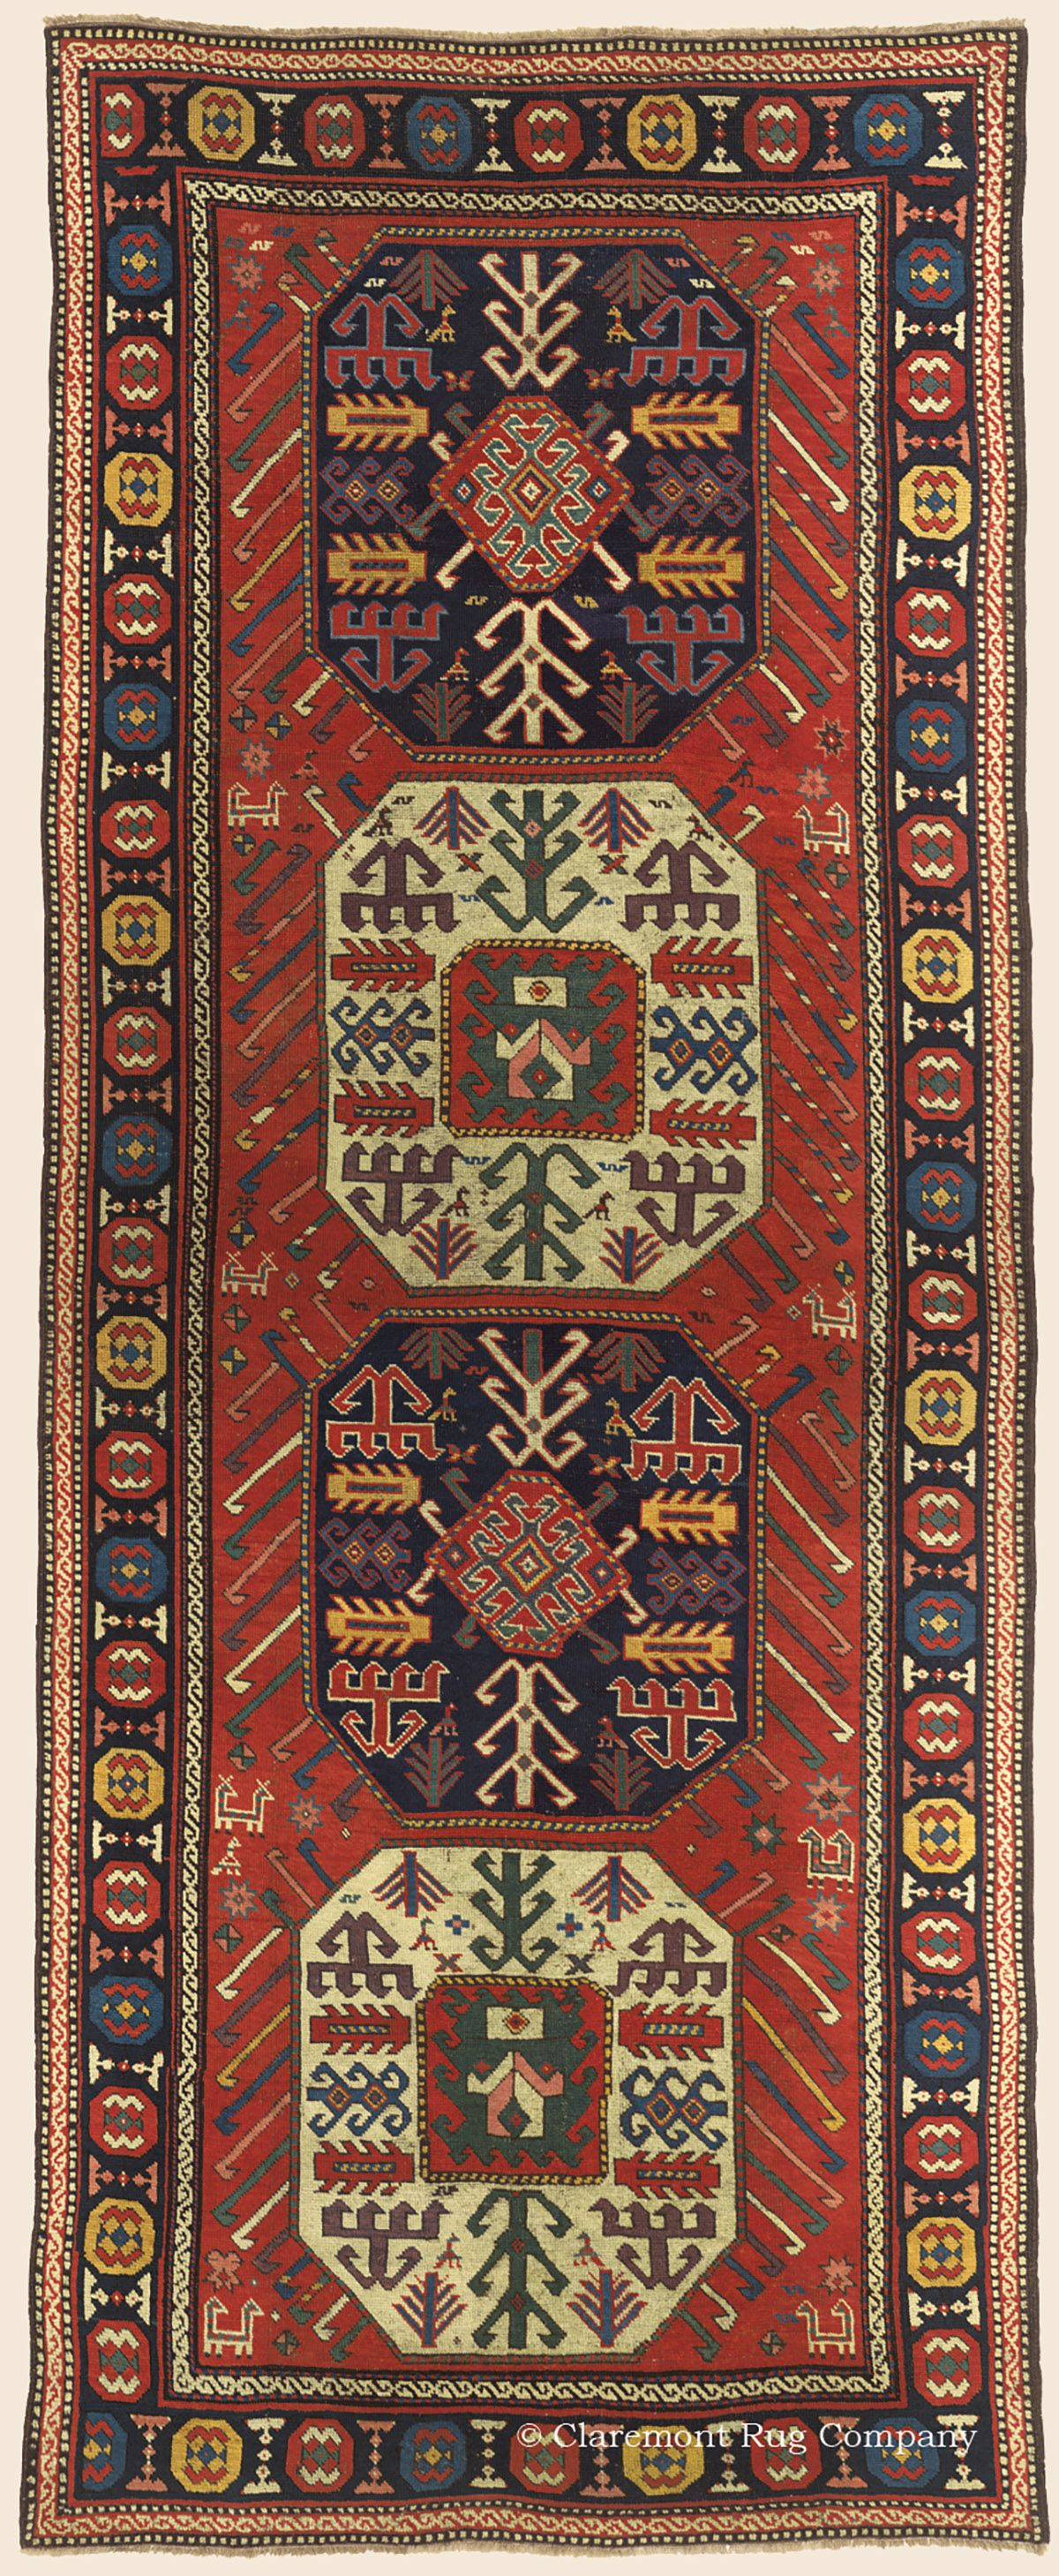 Exquisite 19th Early 20th Century Rugs From Tribal Rugs To City Oversize Carpets Elite San Francisco Bay Area Dealer Claremont Rug Company Rugs Rug Company